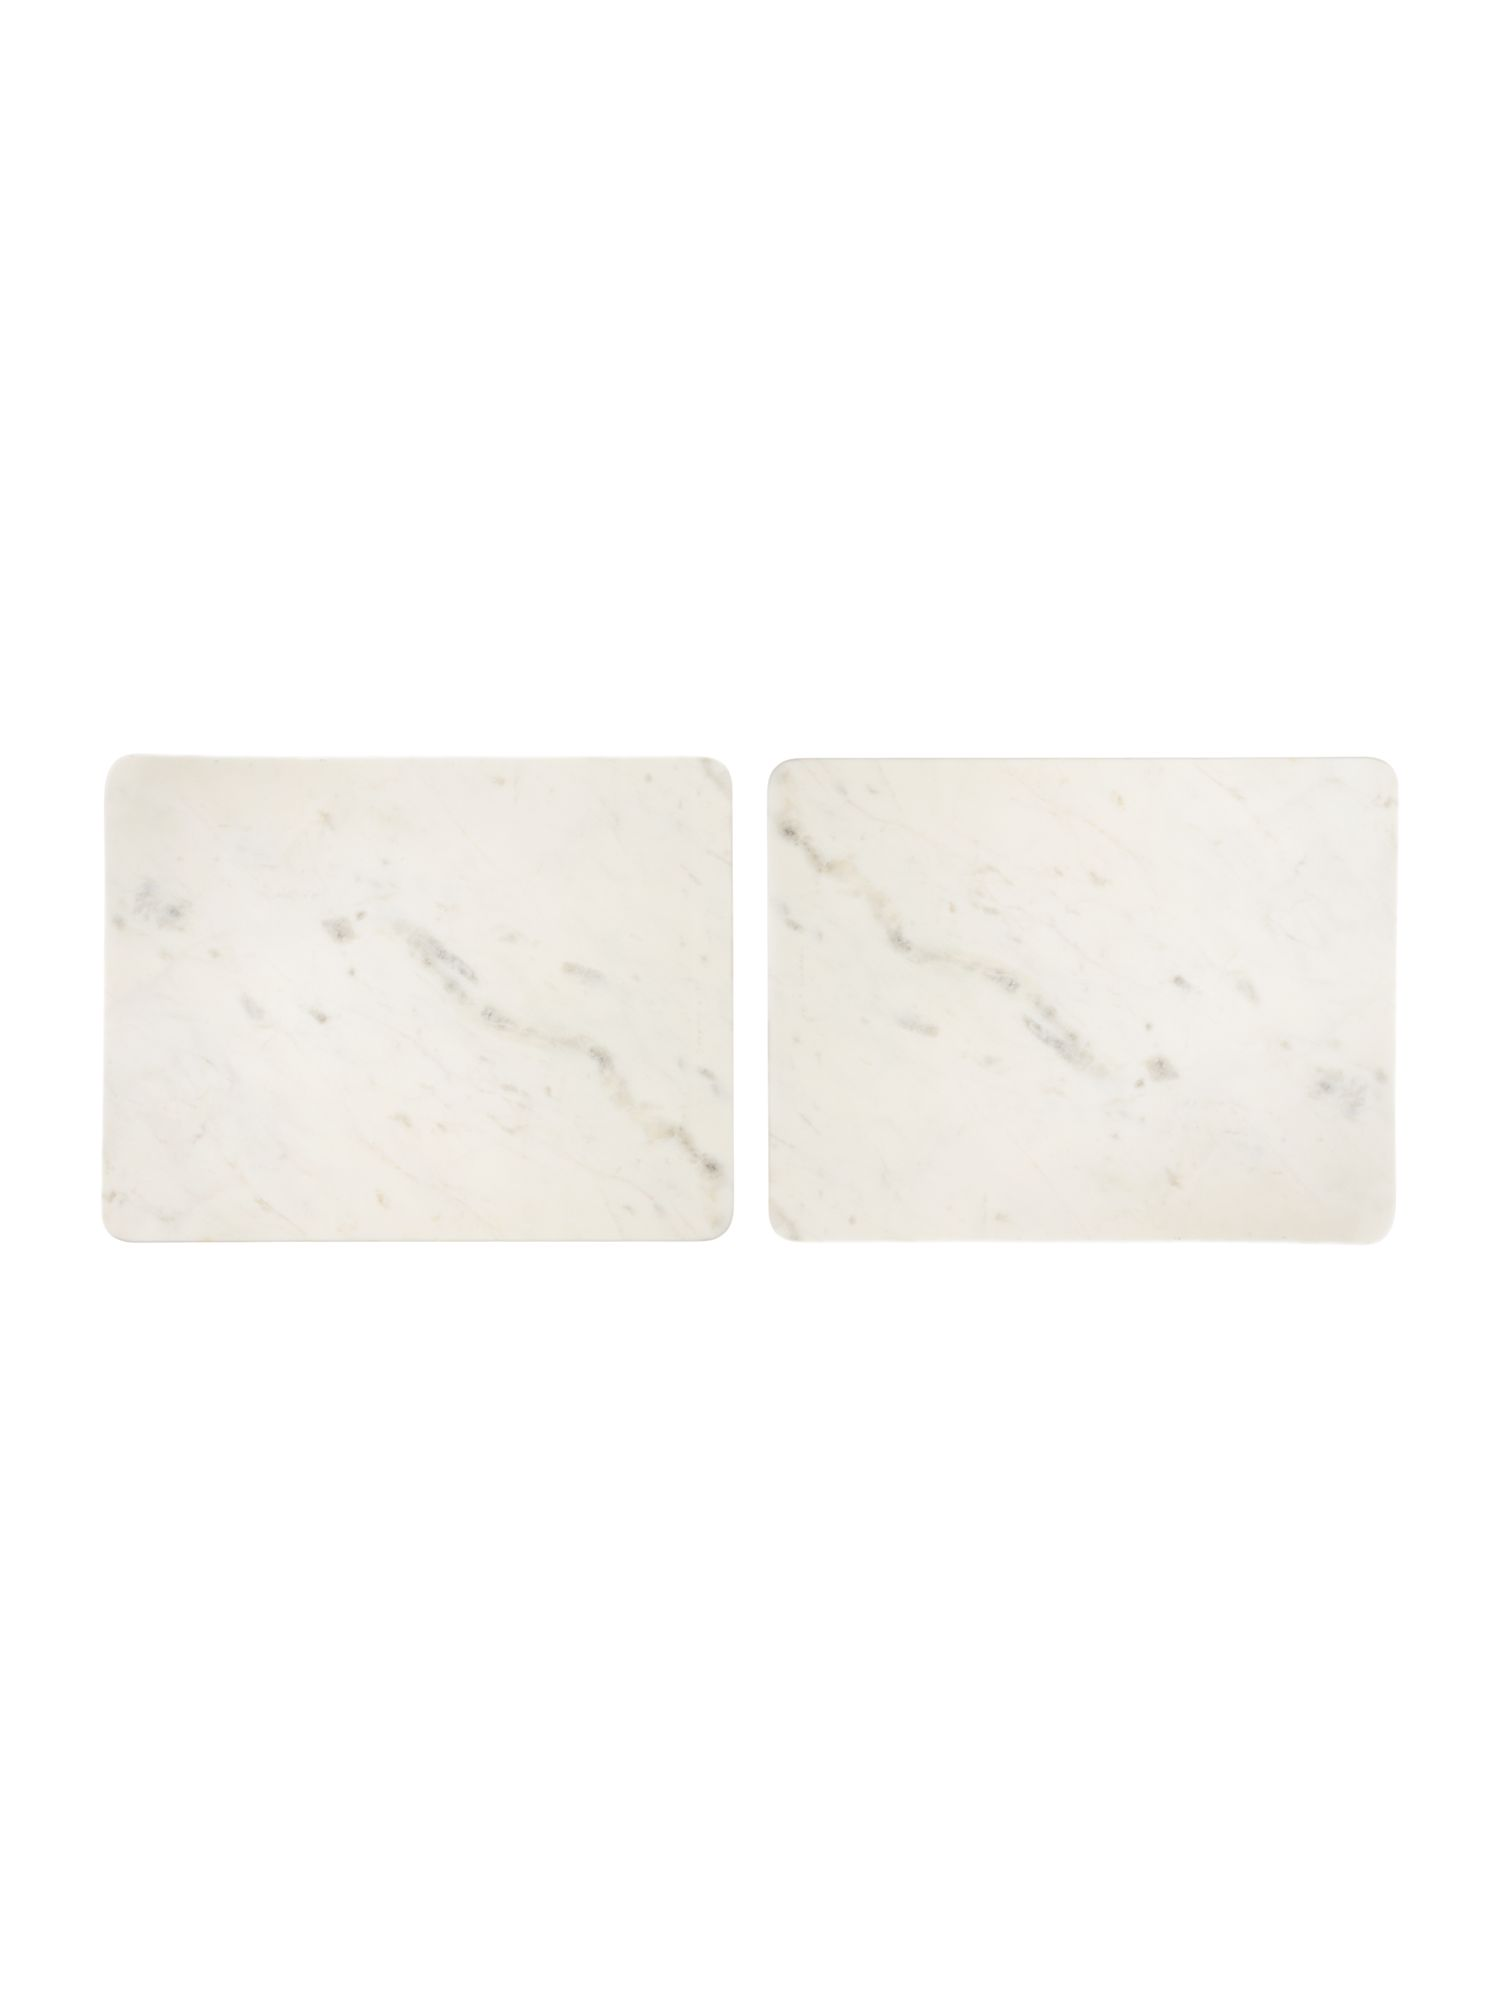 Casa white marble placemat set 2